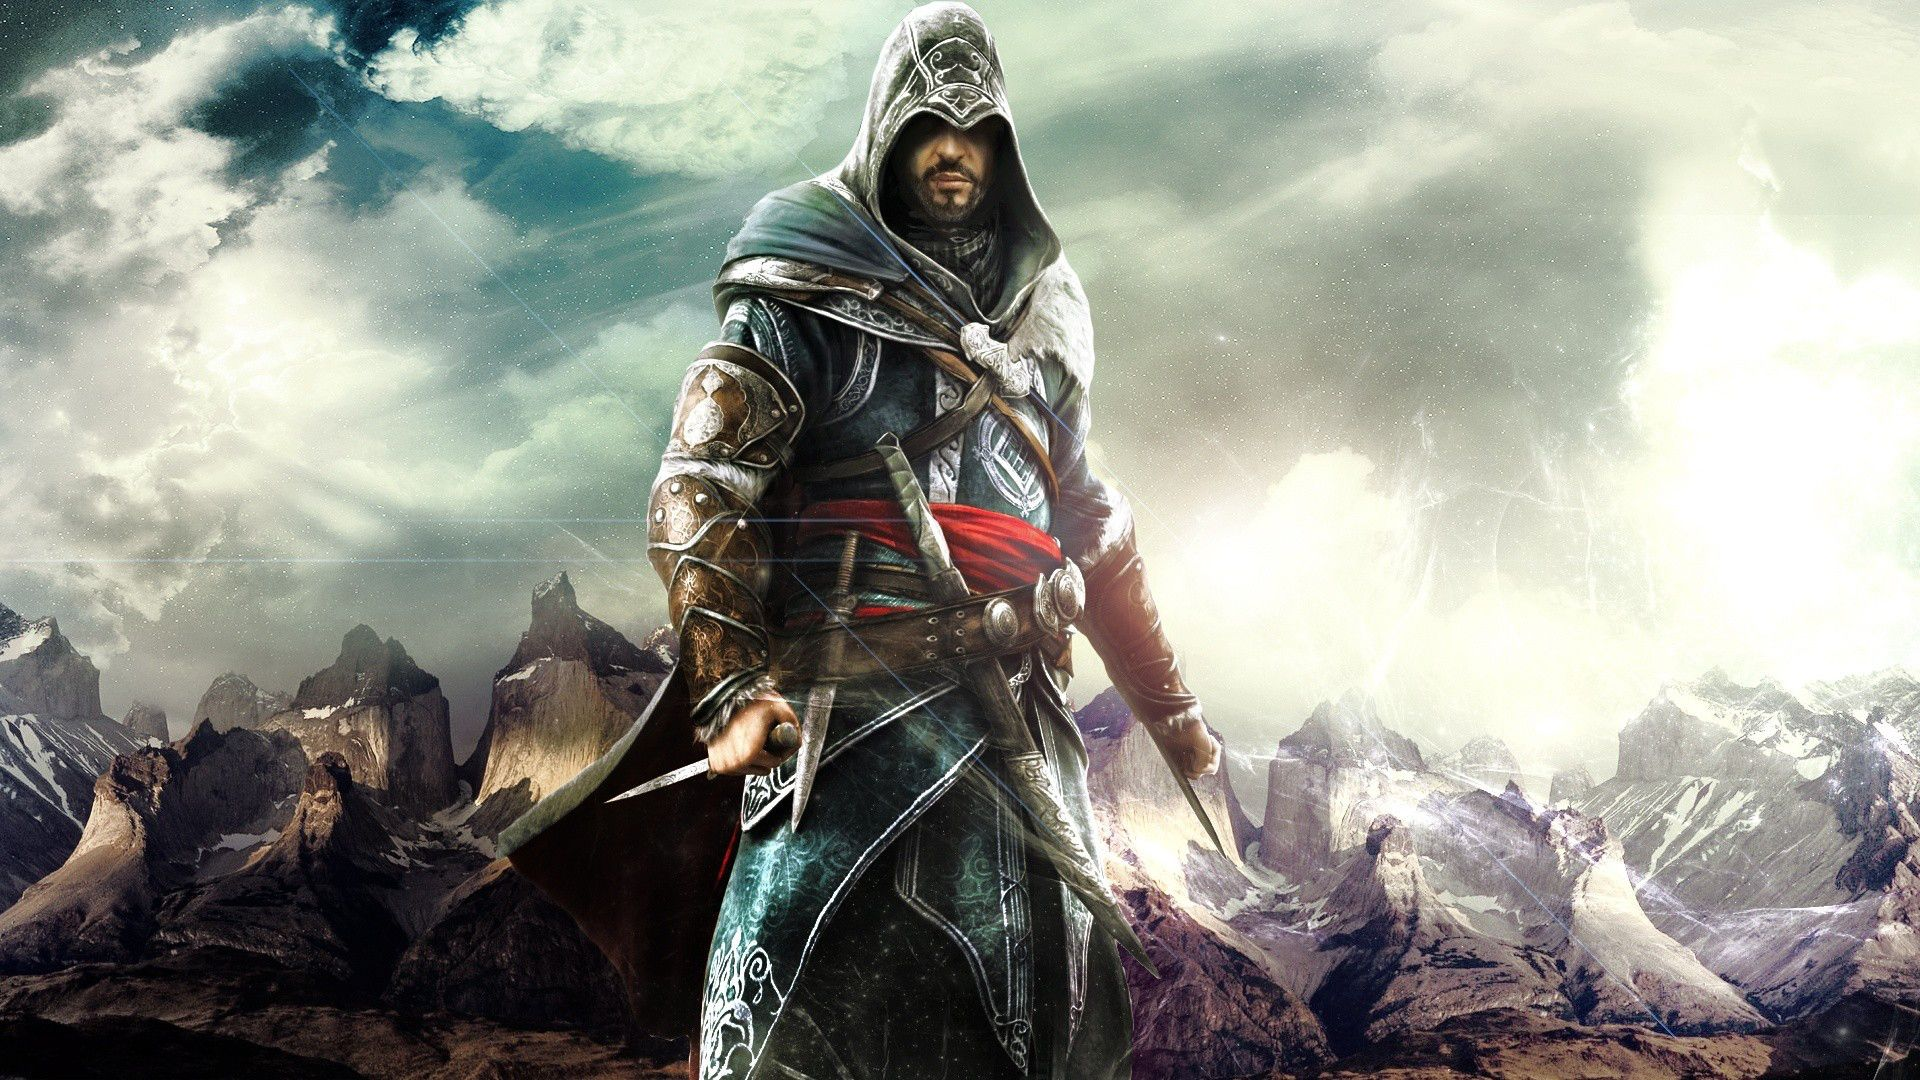 Hd wallpaper games - Find This Pin And More On Games Hd Images